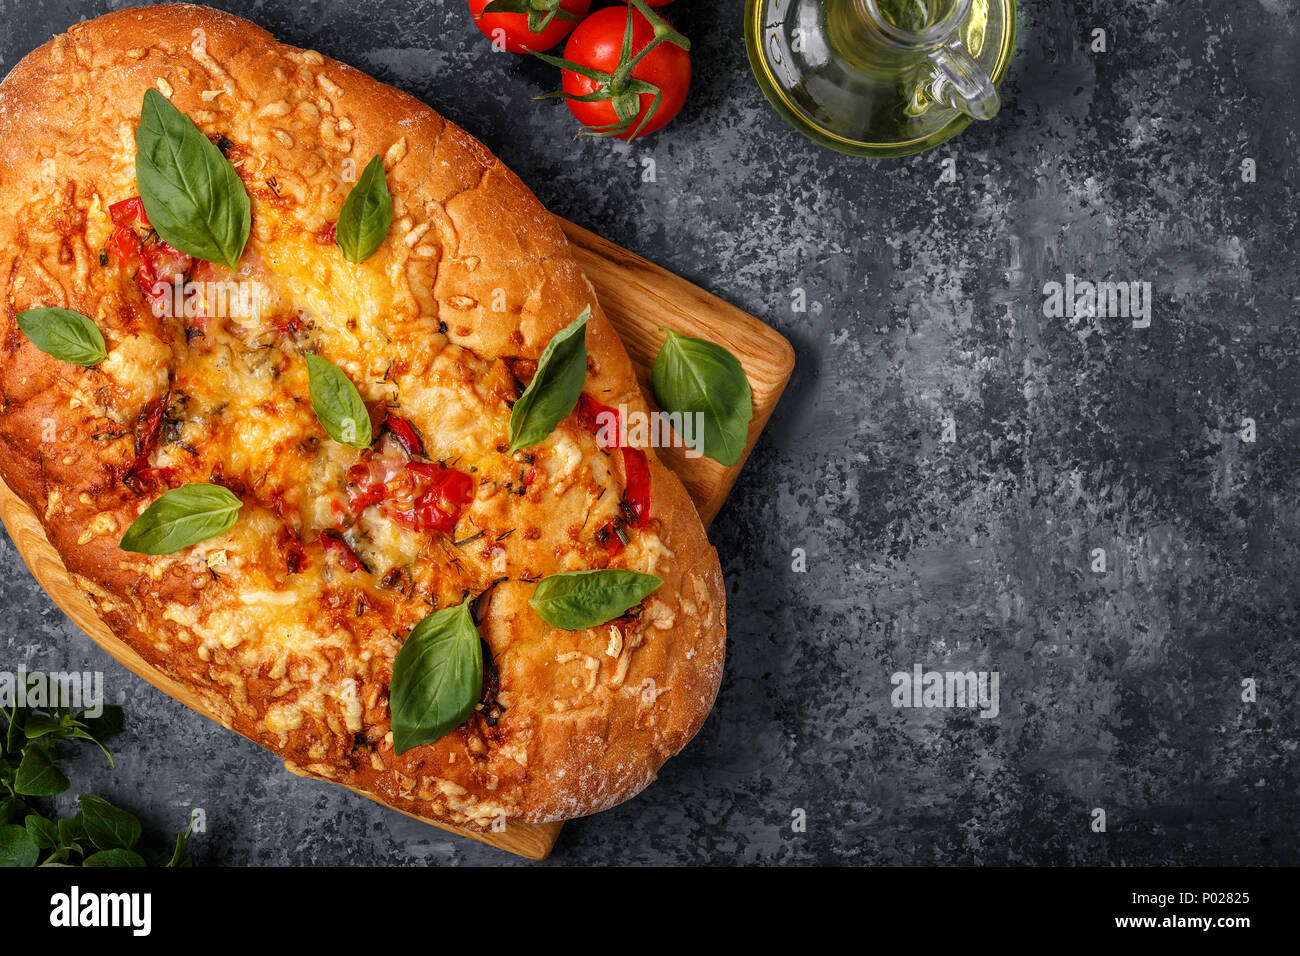 Focaccia with tomatoes, herbs and cheese, garnished with basil leaves. Stock Photo